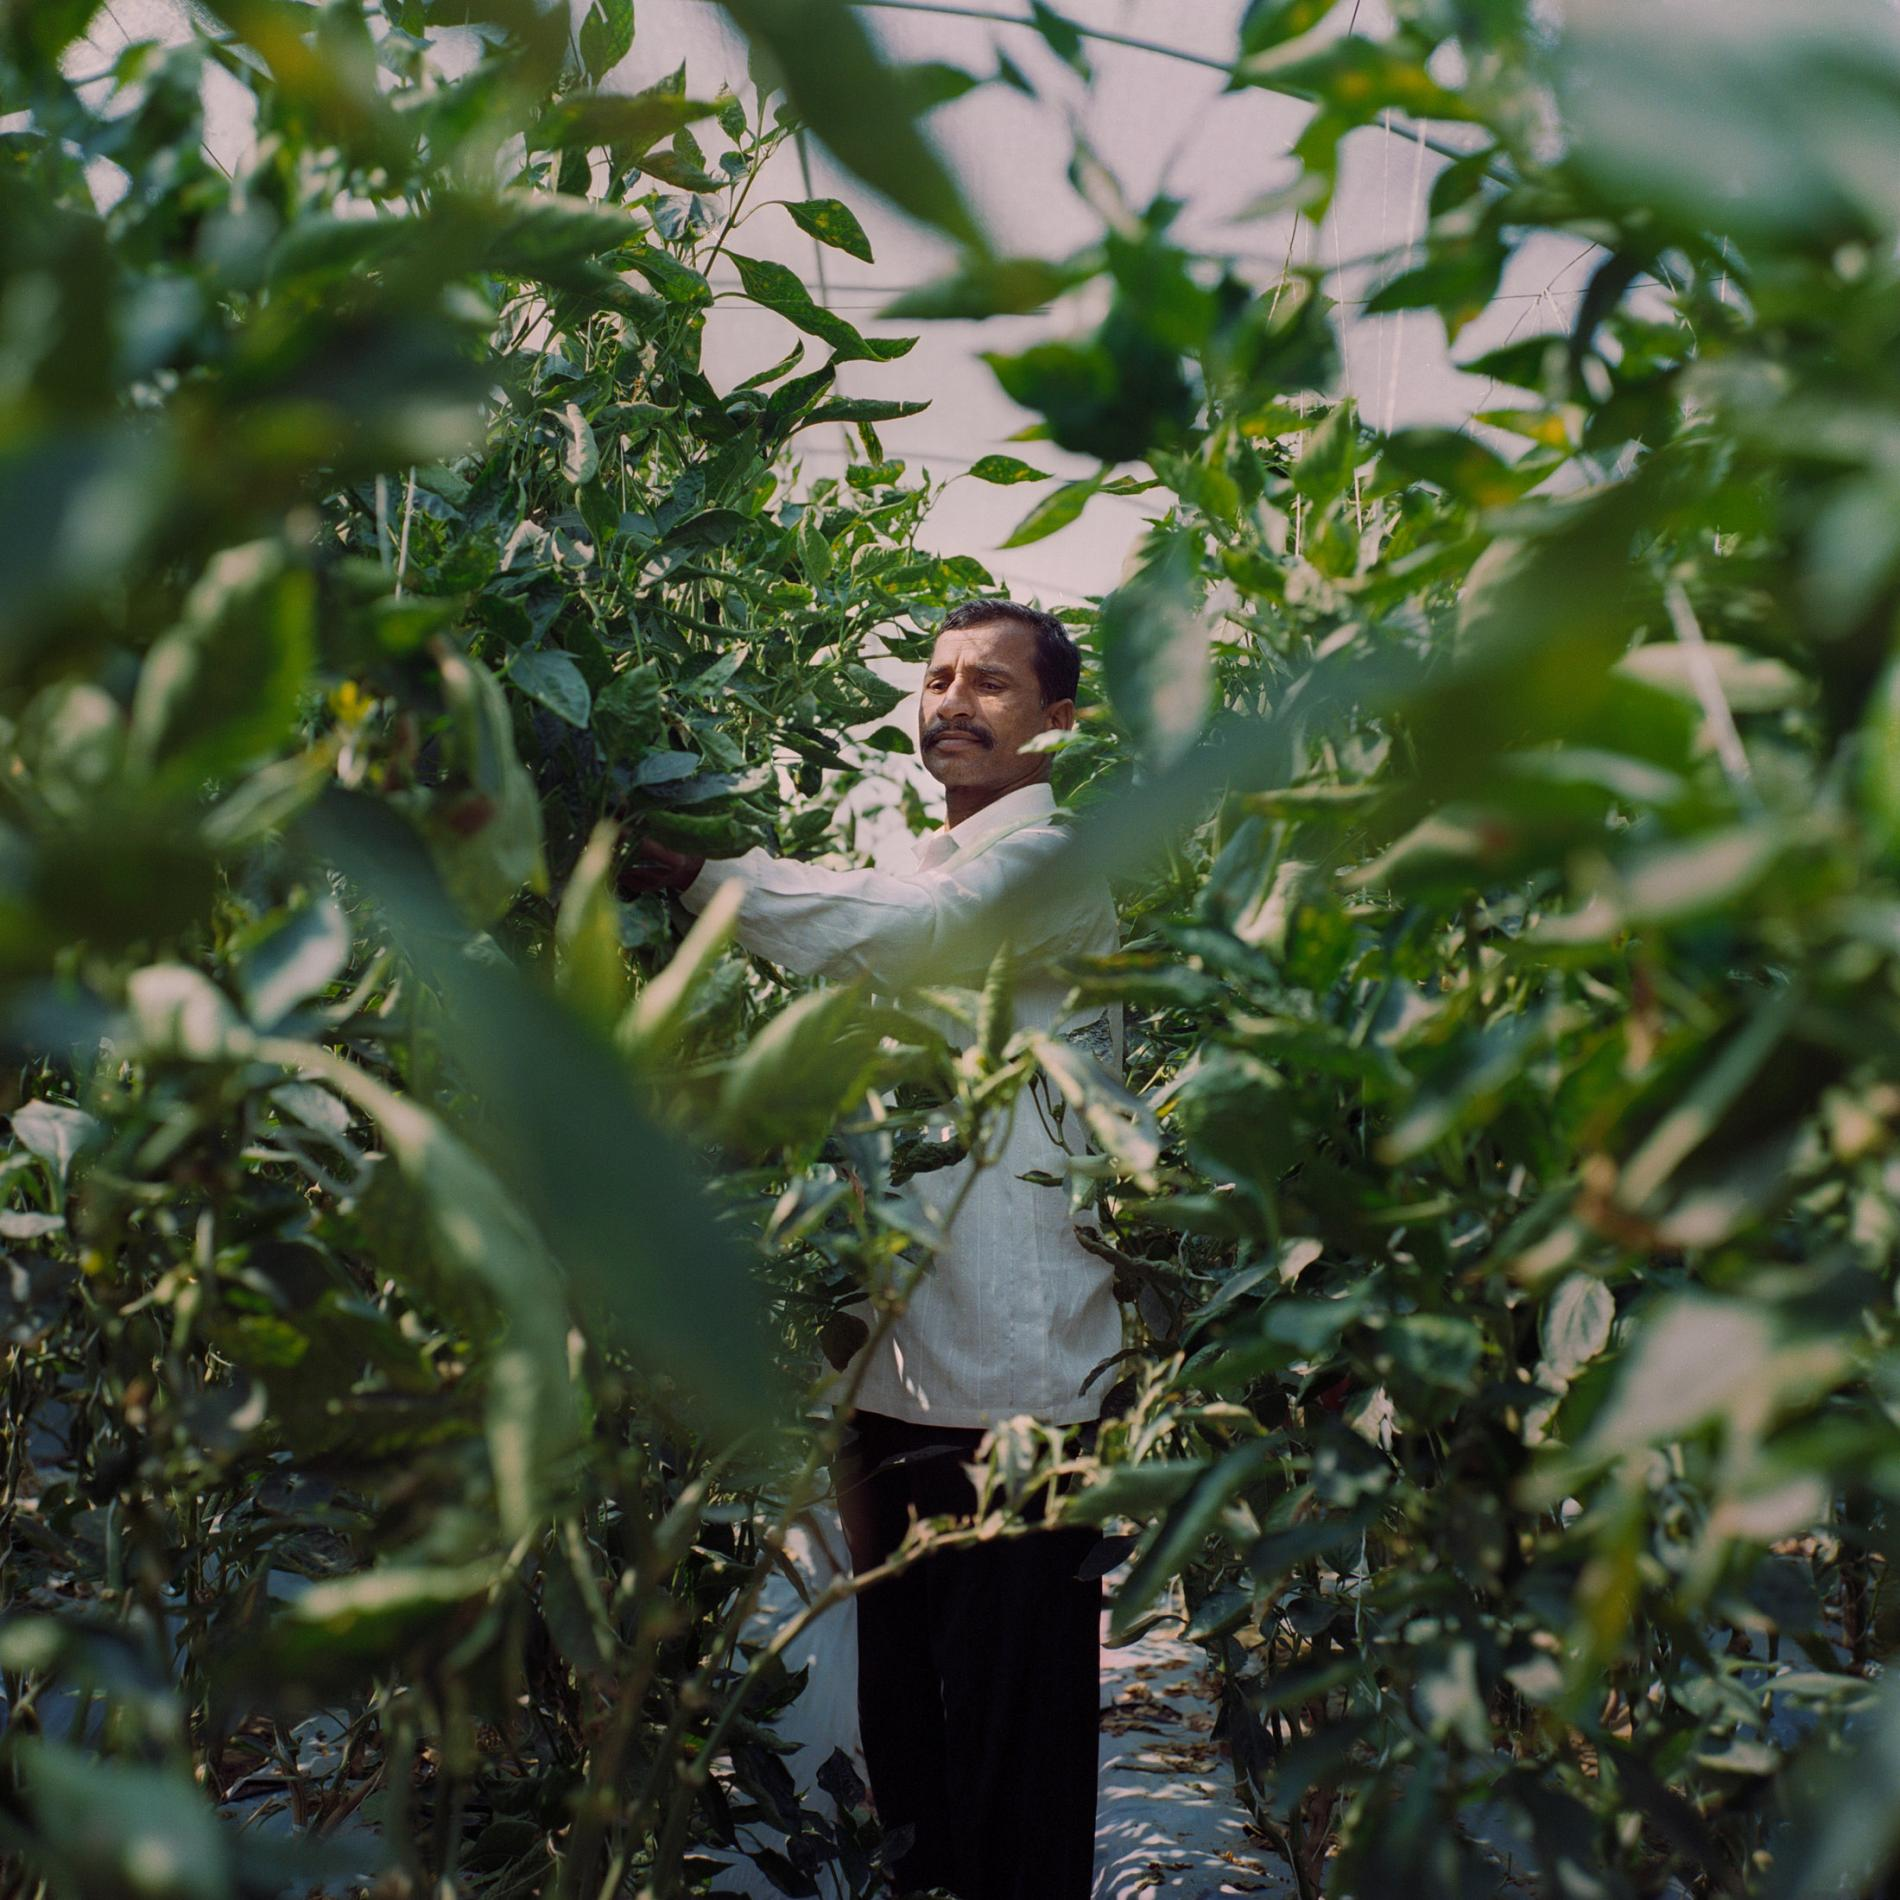 Venkatesh Appala, 45, grows bell peppers in Laxmapur. He started his greenhouse operation in January 2017, and estimates a profit of 46,000 rupees (just over $700) in his first year. He's using the extra income to save for his daughter's dowry, which can run up to $10,000.